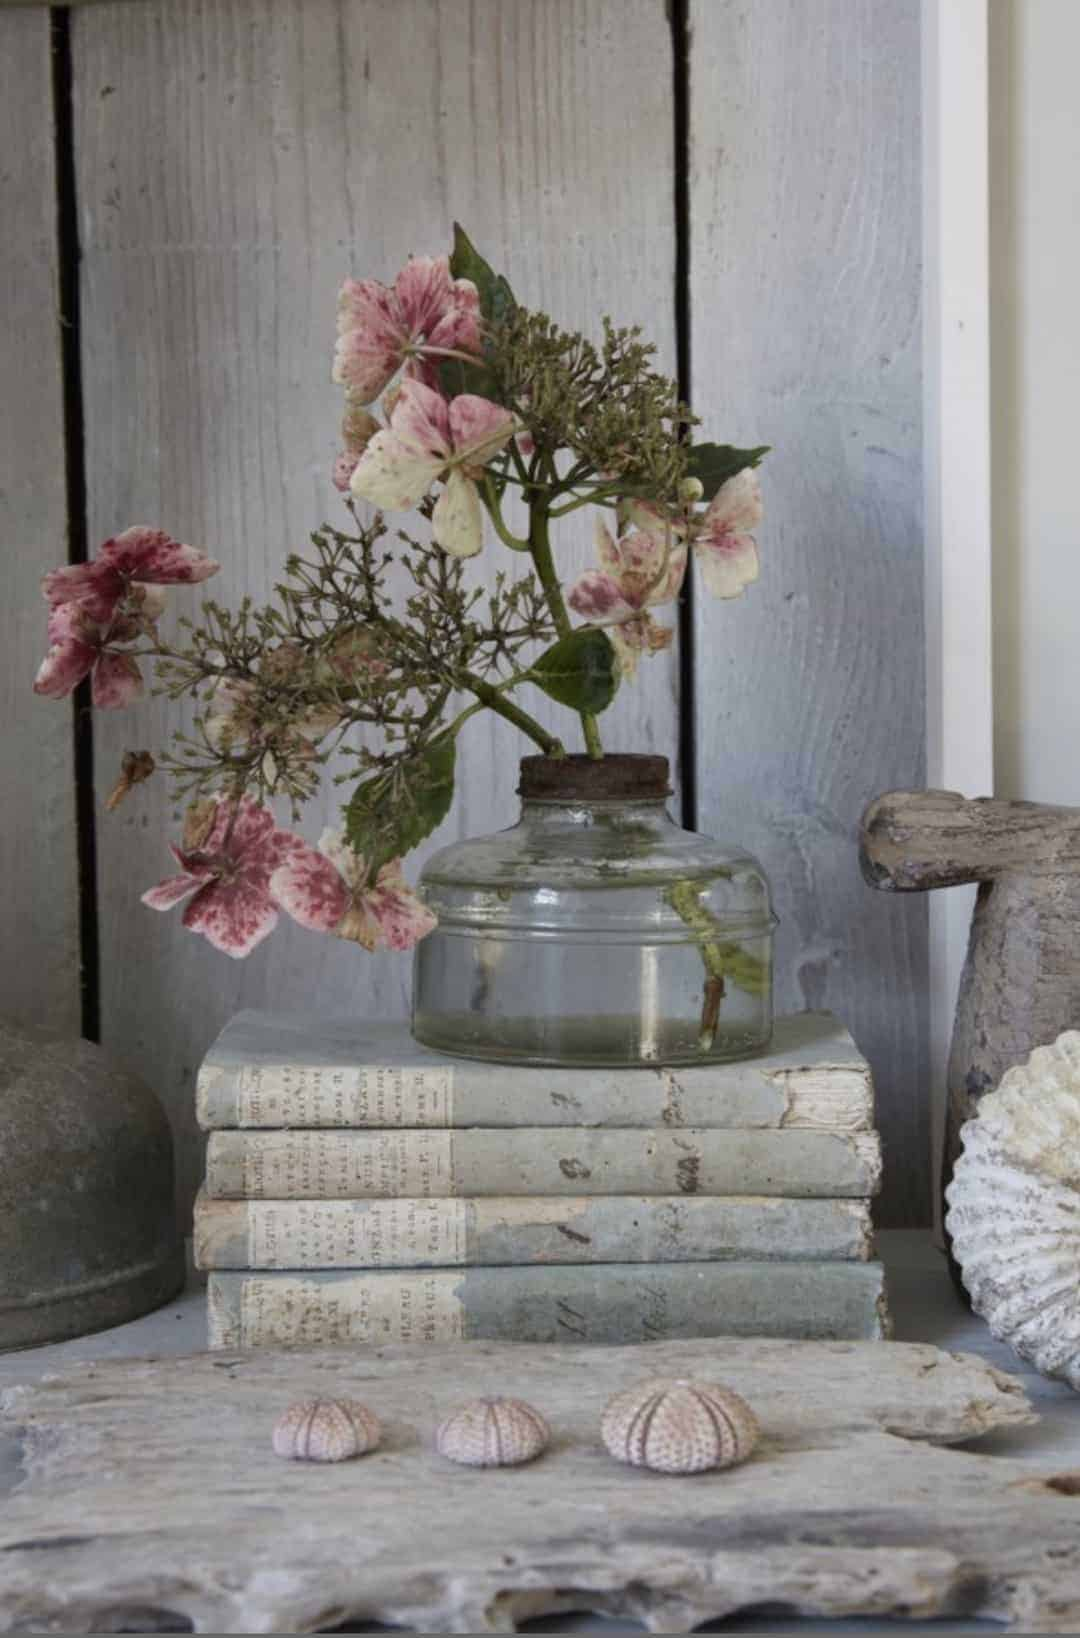 love this vintage seaside style with seashells, driftwood, vintage books and urchins. White washed wood finishes the look. Click through for more coastal decoration ideas you'll love